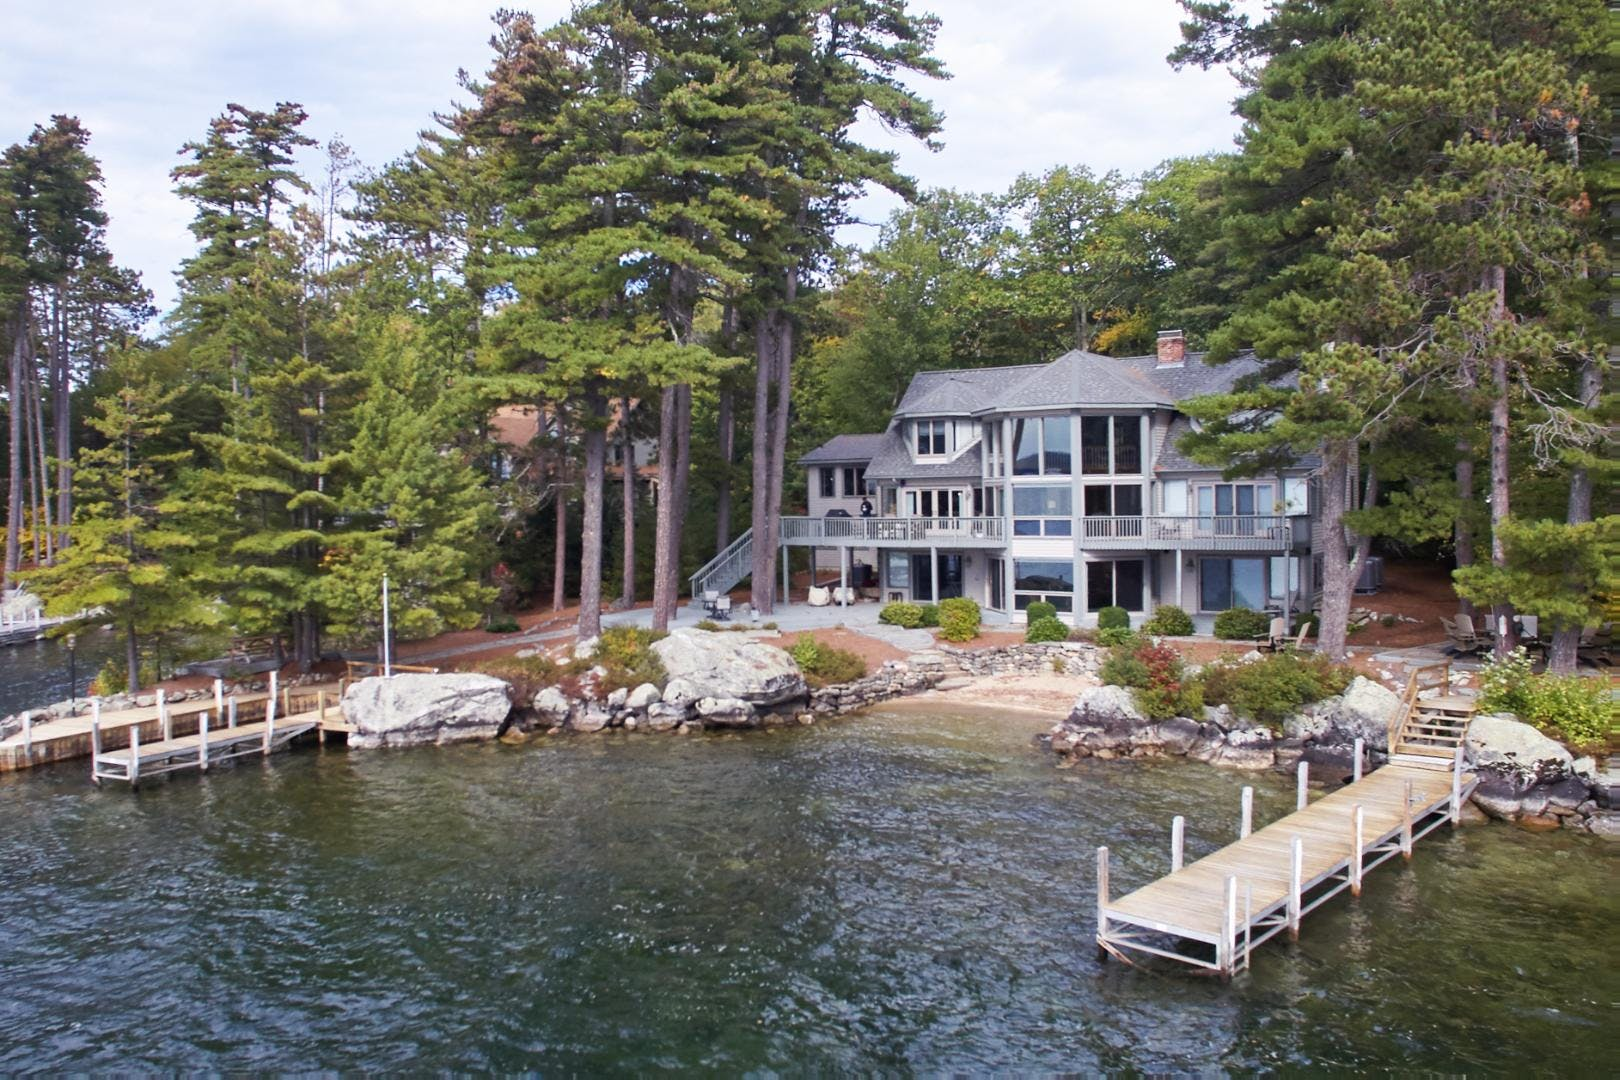 in n bon commonwealth camp search on vacation cottage h at content your air winnipesaukee lake cottages nh laconia spend